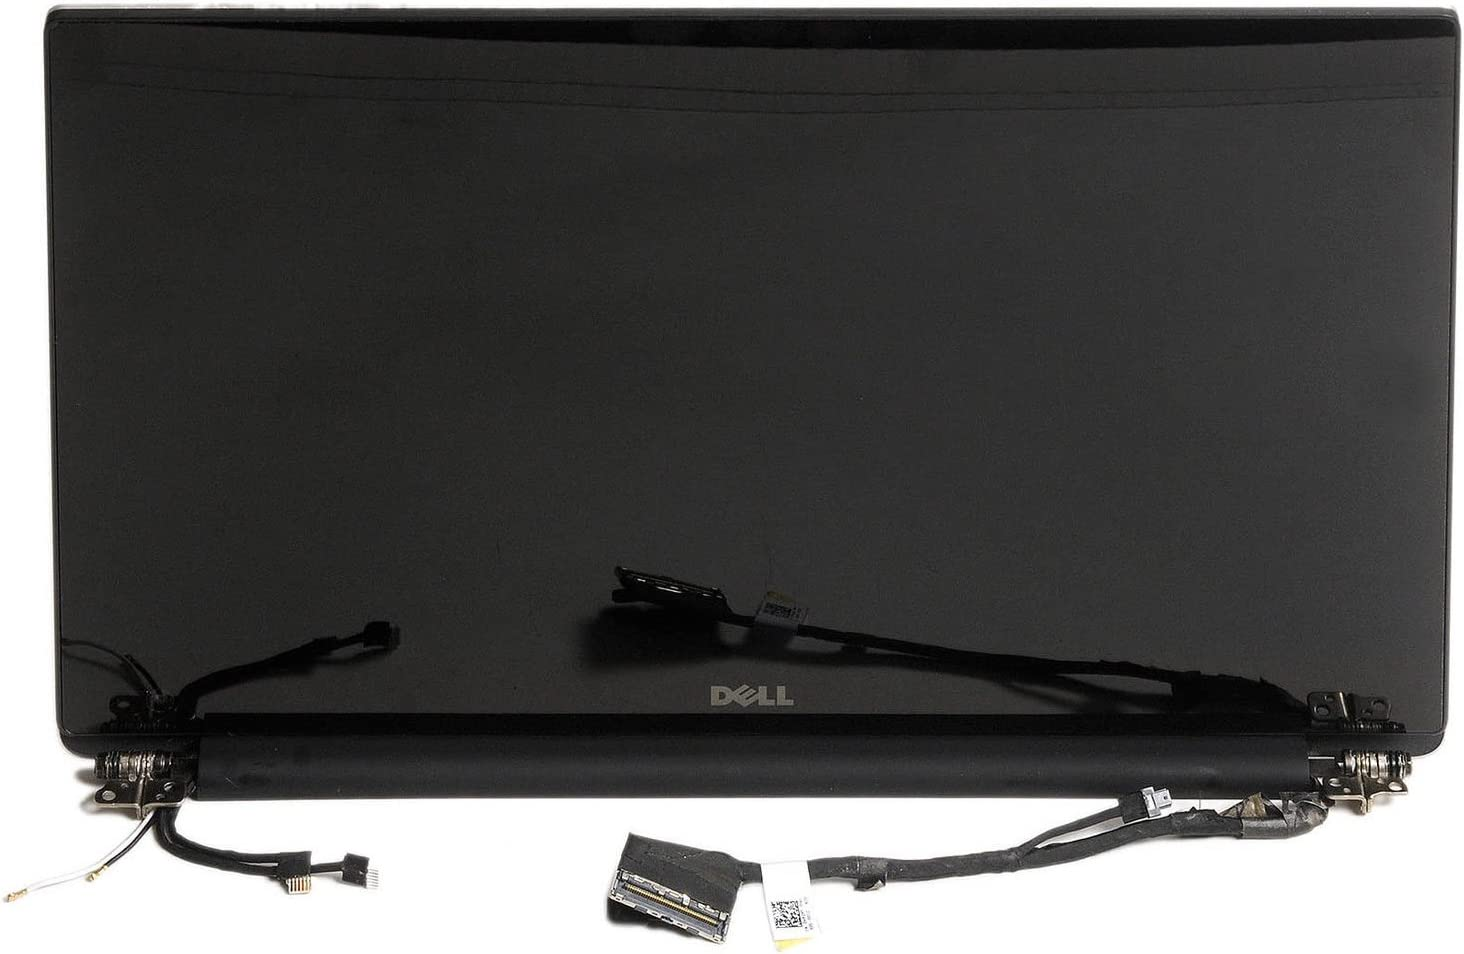 """FOR DELL 13.3"""" QHD (3200X1800) LCD Display + Touch Screen Cover Cable Hinges Complete Full Assembly HP2YT XPS 13-9343 13-9350"""